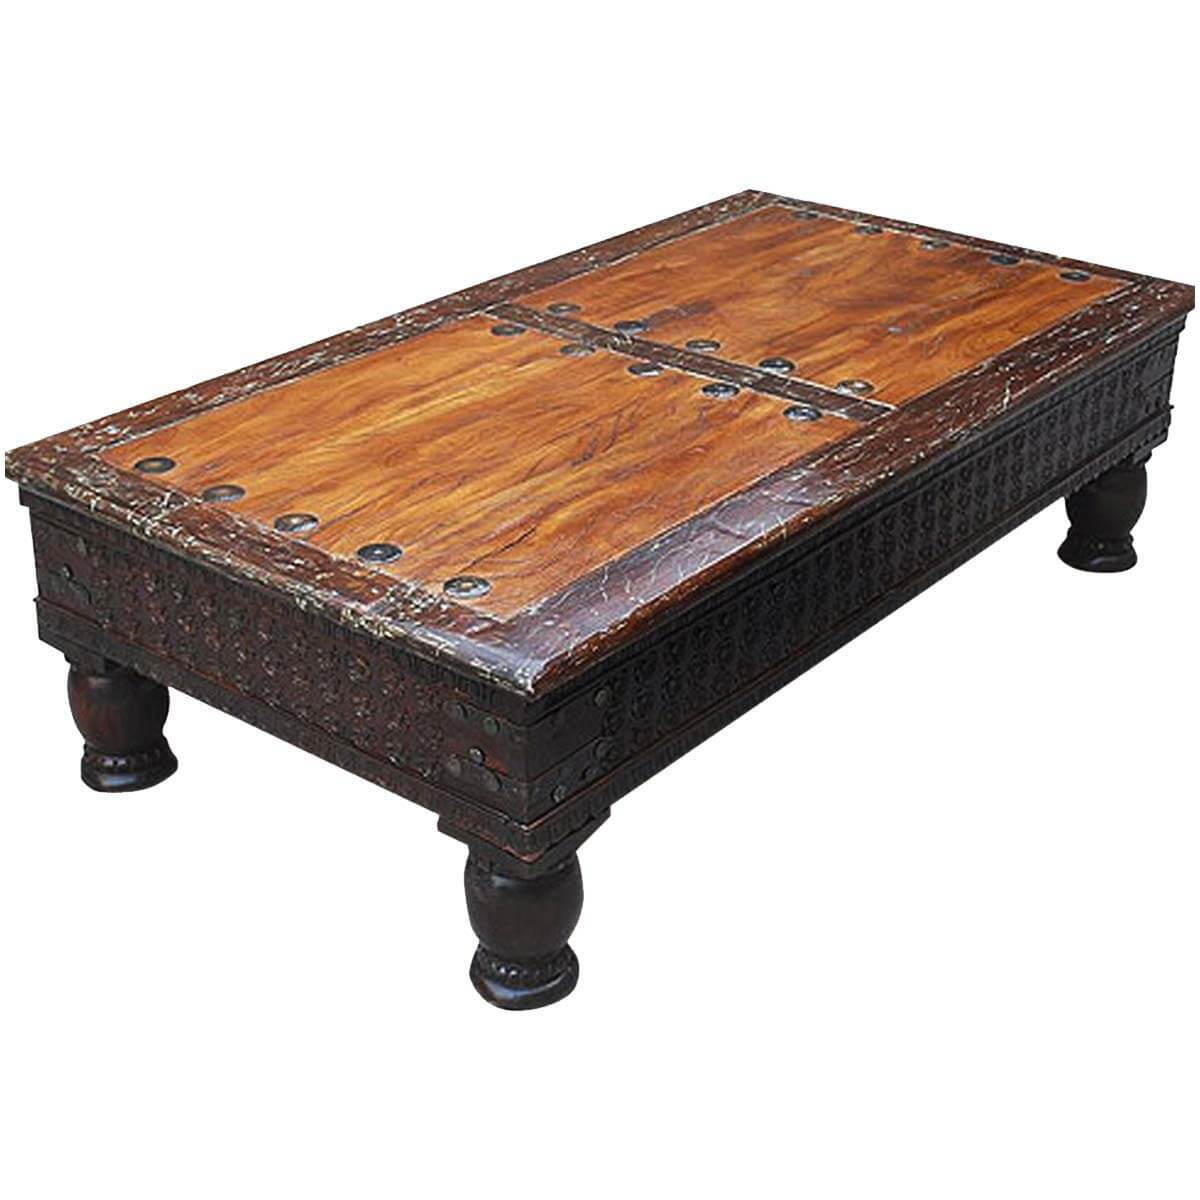 - Rustic Carved Coffee Table Made Of Acacia & Mango Wood